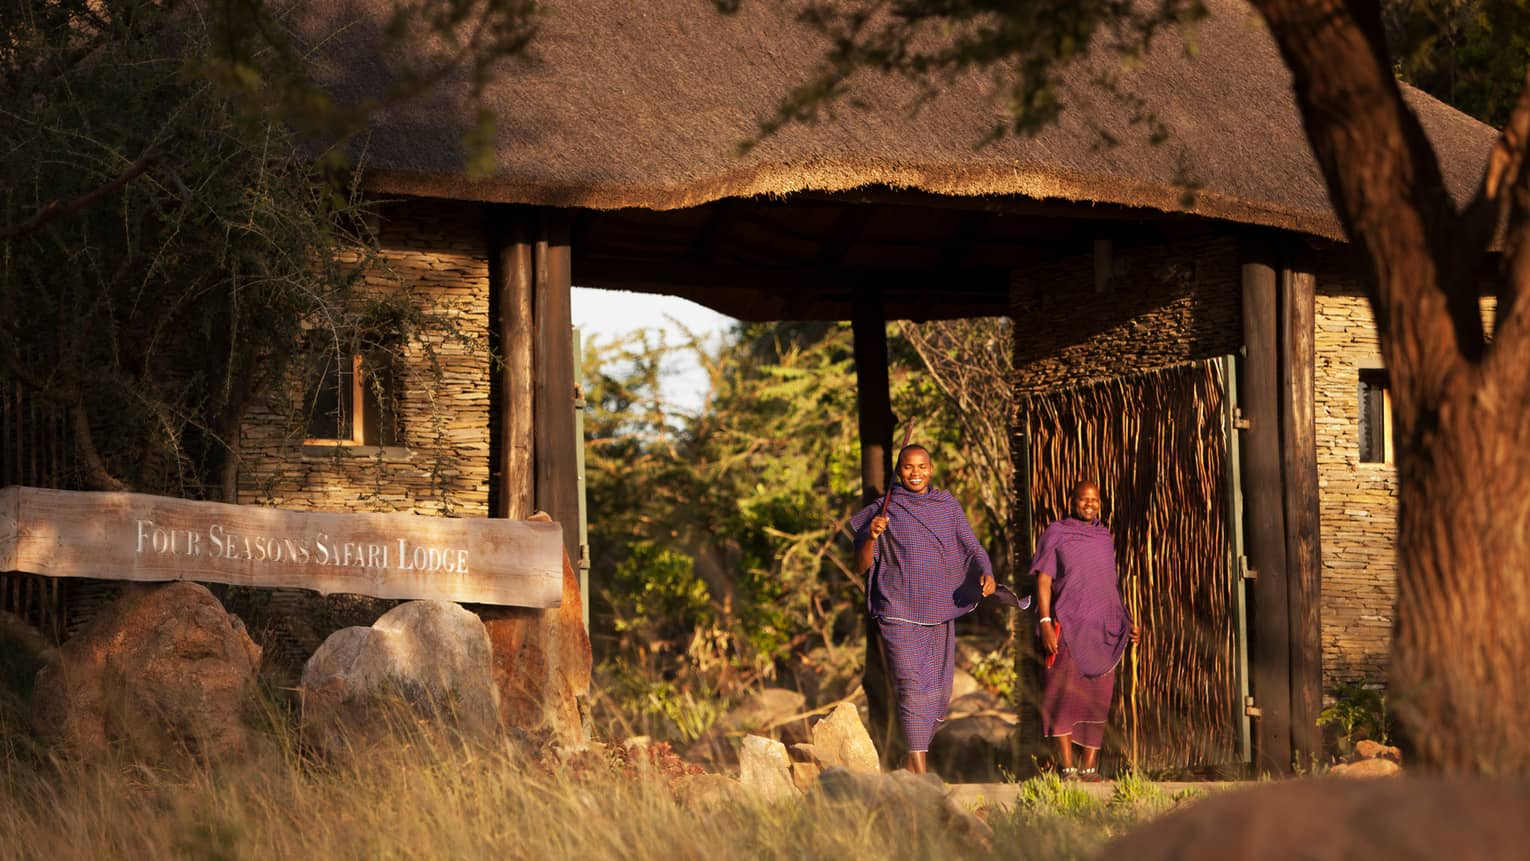 Two people from local Maasai smile, stand by Four Seasons Safari Lodge Serengeti sign